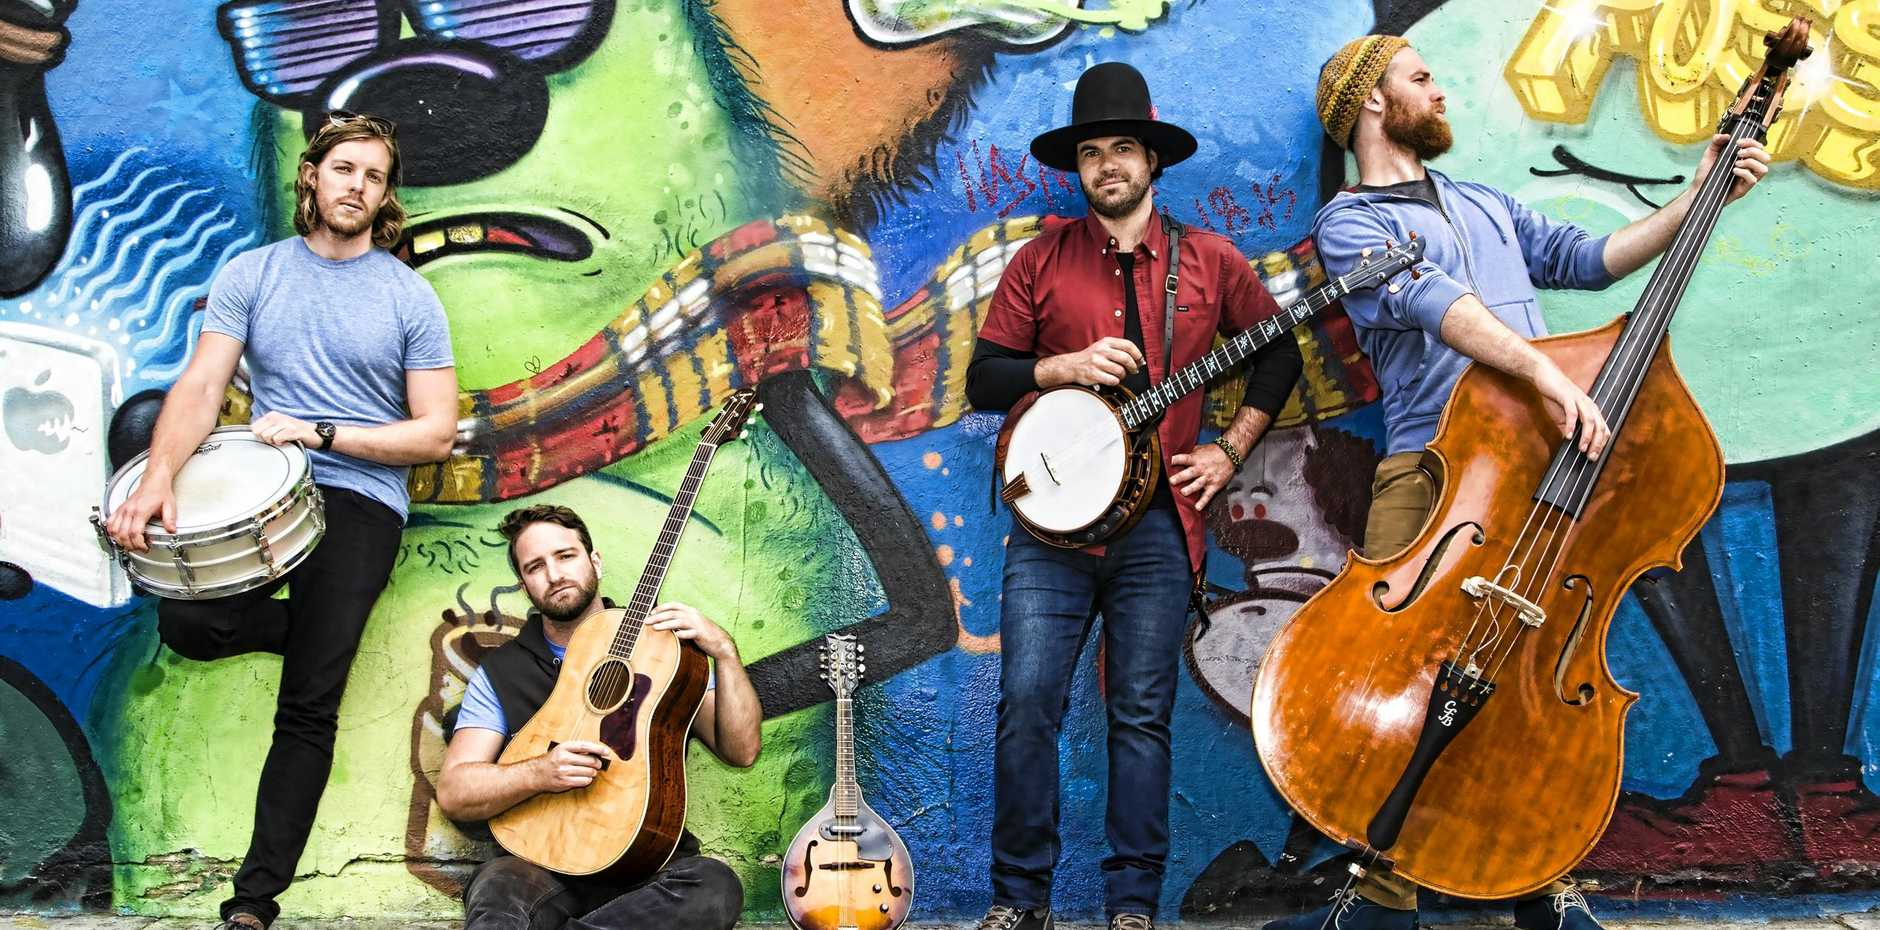 MOON FOLK: Mustered Courage is a progressive bluegrass band from Melbourne whose lively shows feature elements of bluegrass, country rock and jazz. At Wintermoon in 2018.